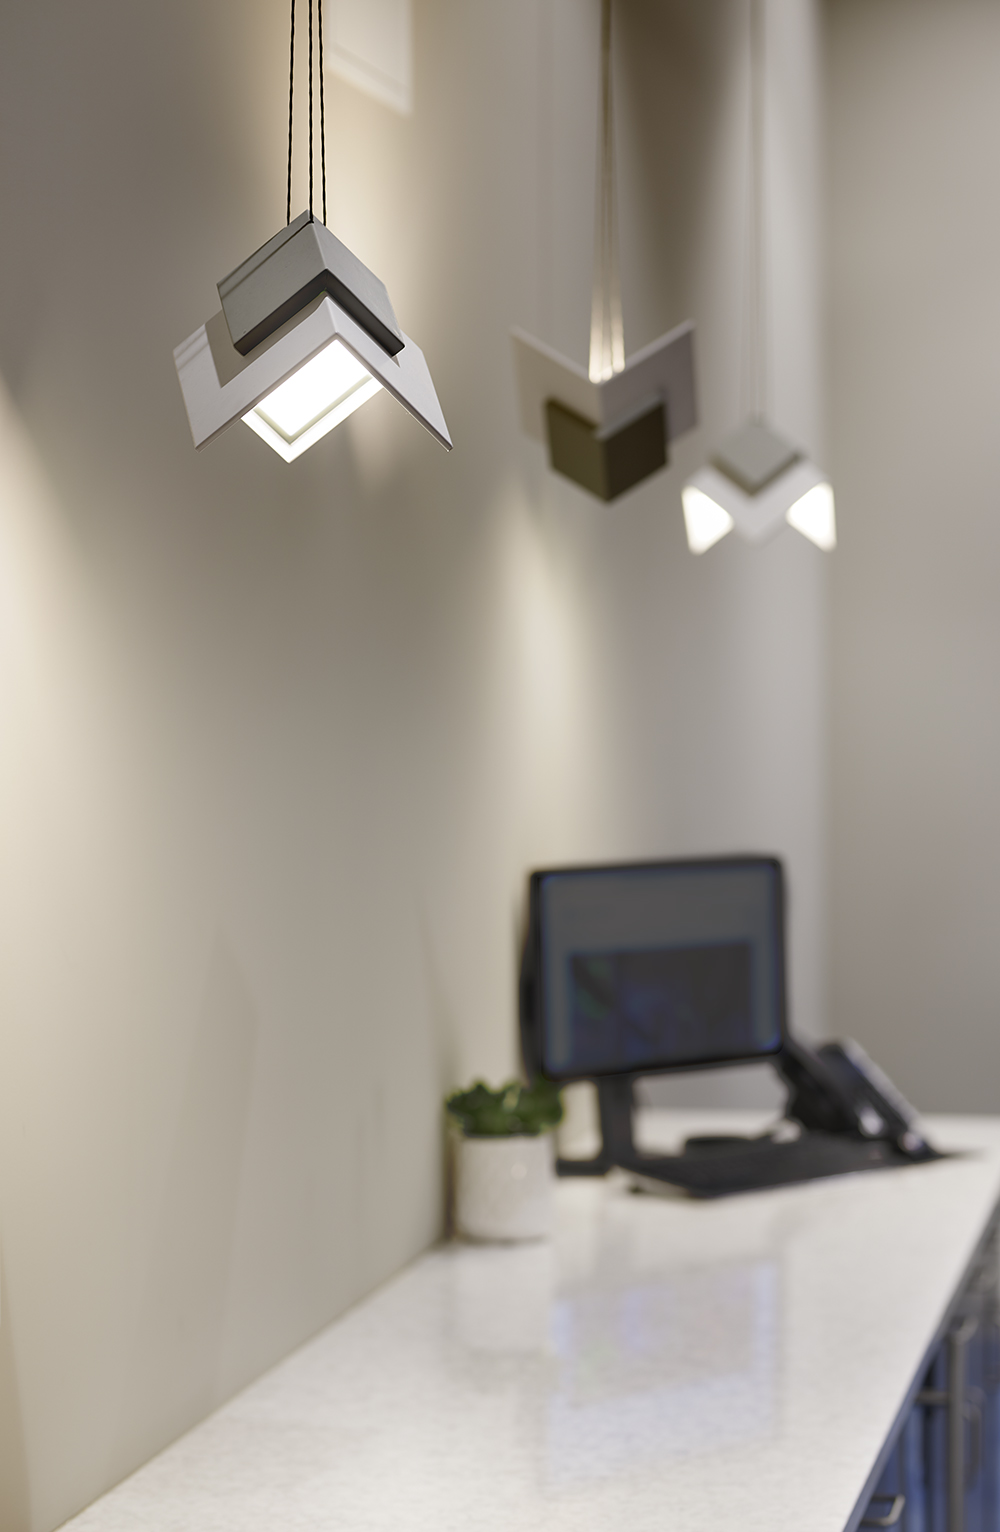 Petal OLED pendants as office lighting fixtures along a meeting room wall.